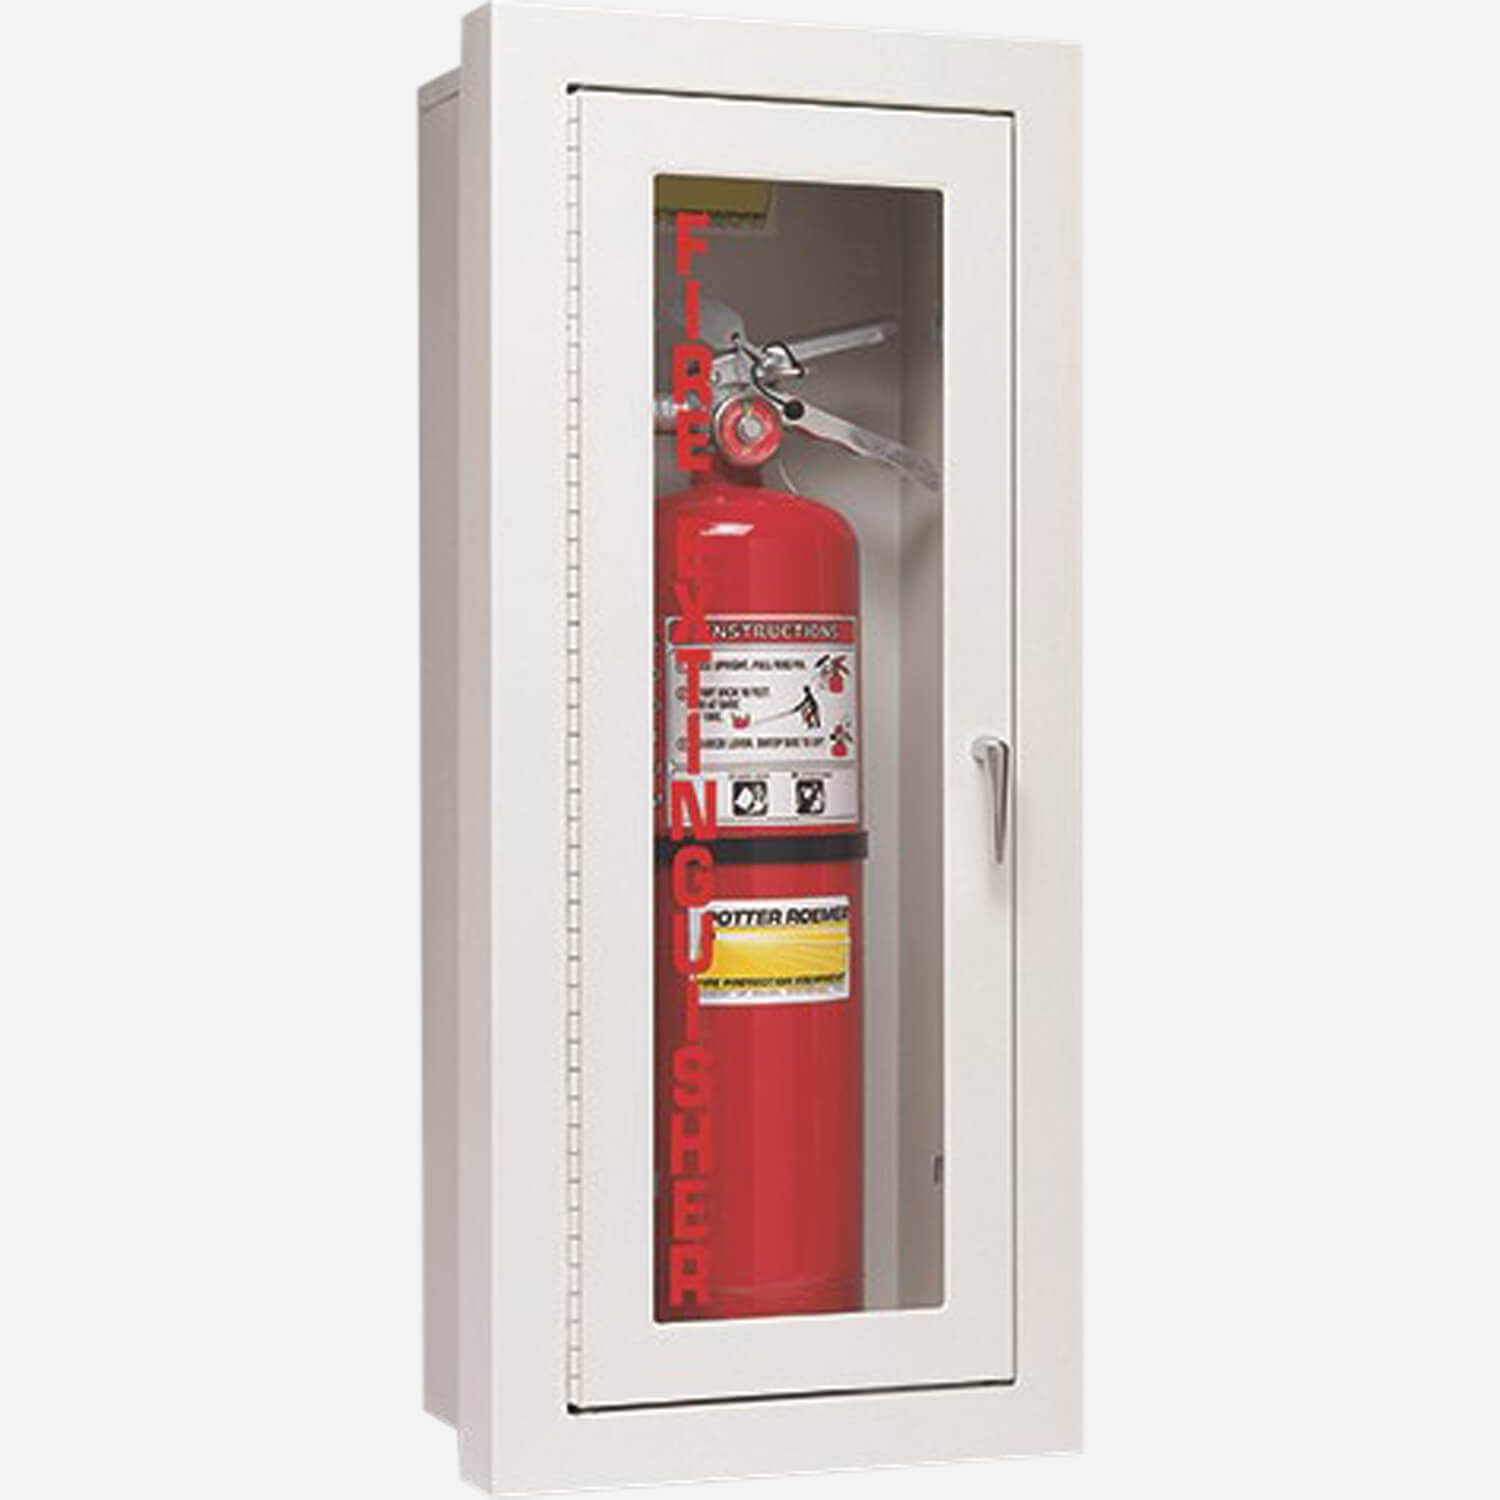 Fire Rated 1700 Series Fire Extinguisher Cabinet - Potter Roemer